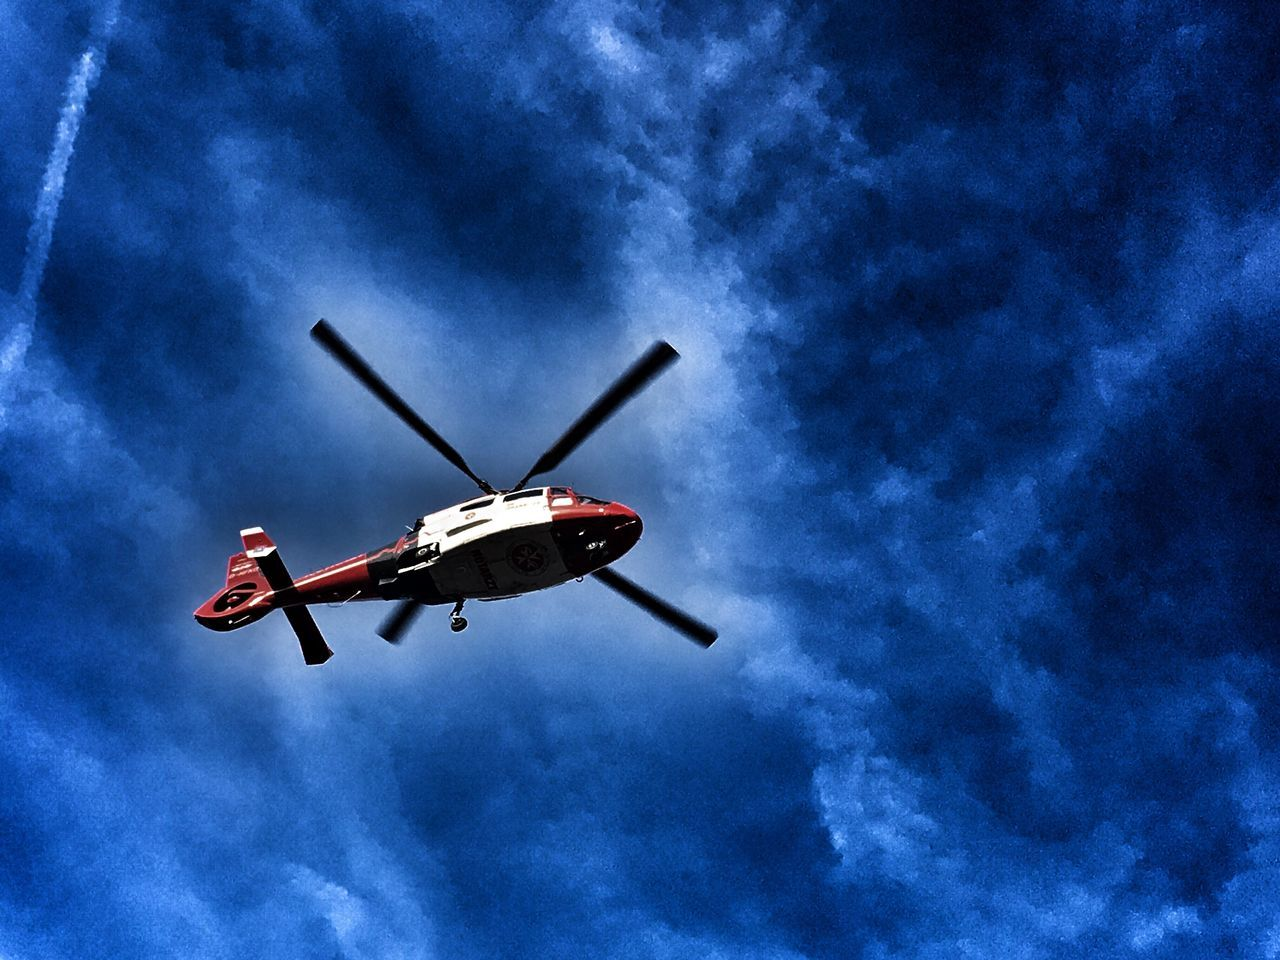 low angle view, flying, sky, blue, transportation, air vehicle, mode of transport, mid-air, cloud - sky, airplane, outdoors, day, helicopter, no people, red, nature